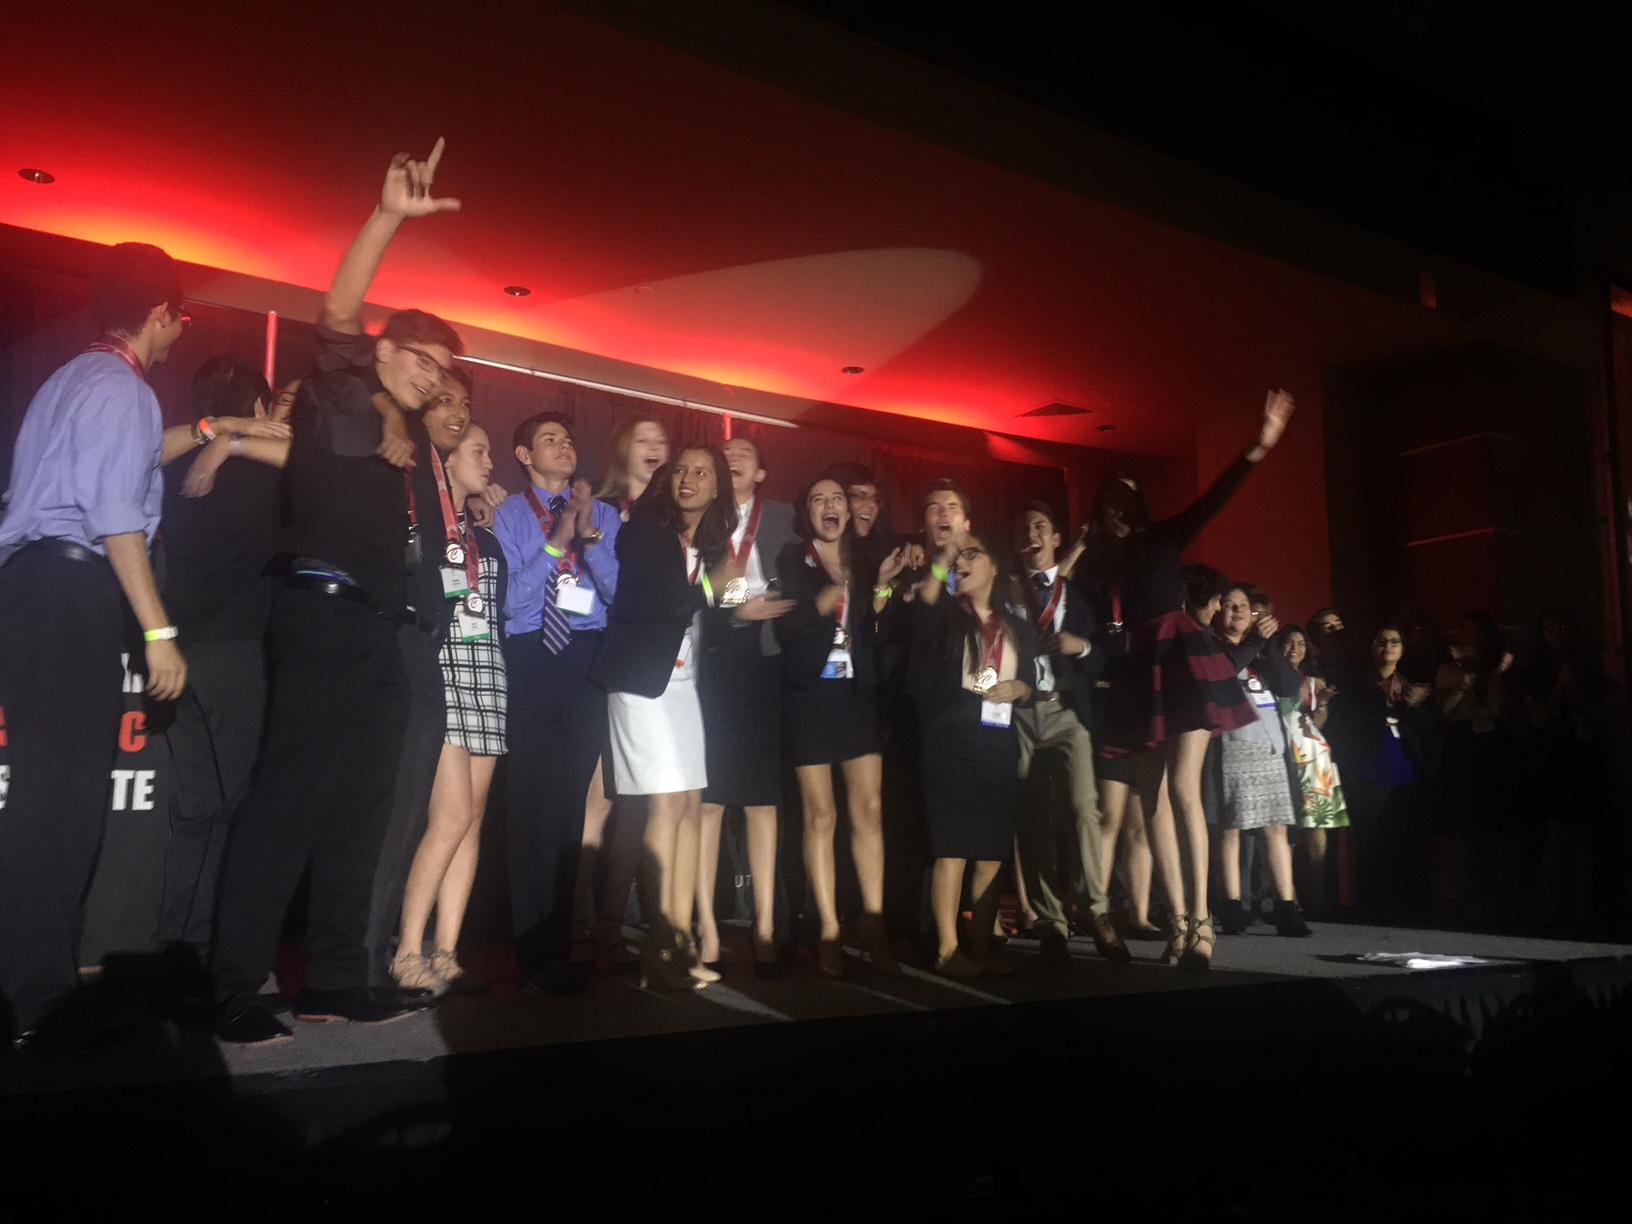 Students from the LIT team celebrate their 2016 Celebracion victory